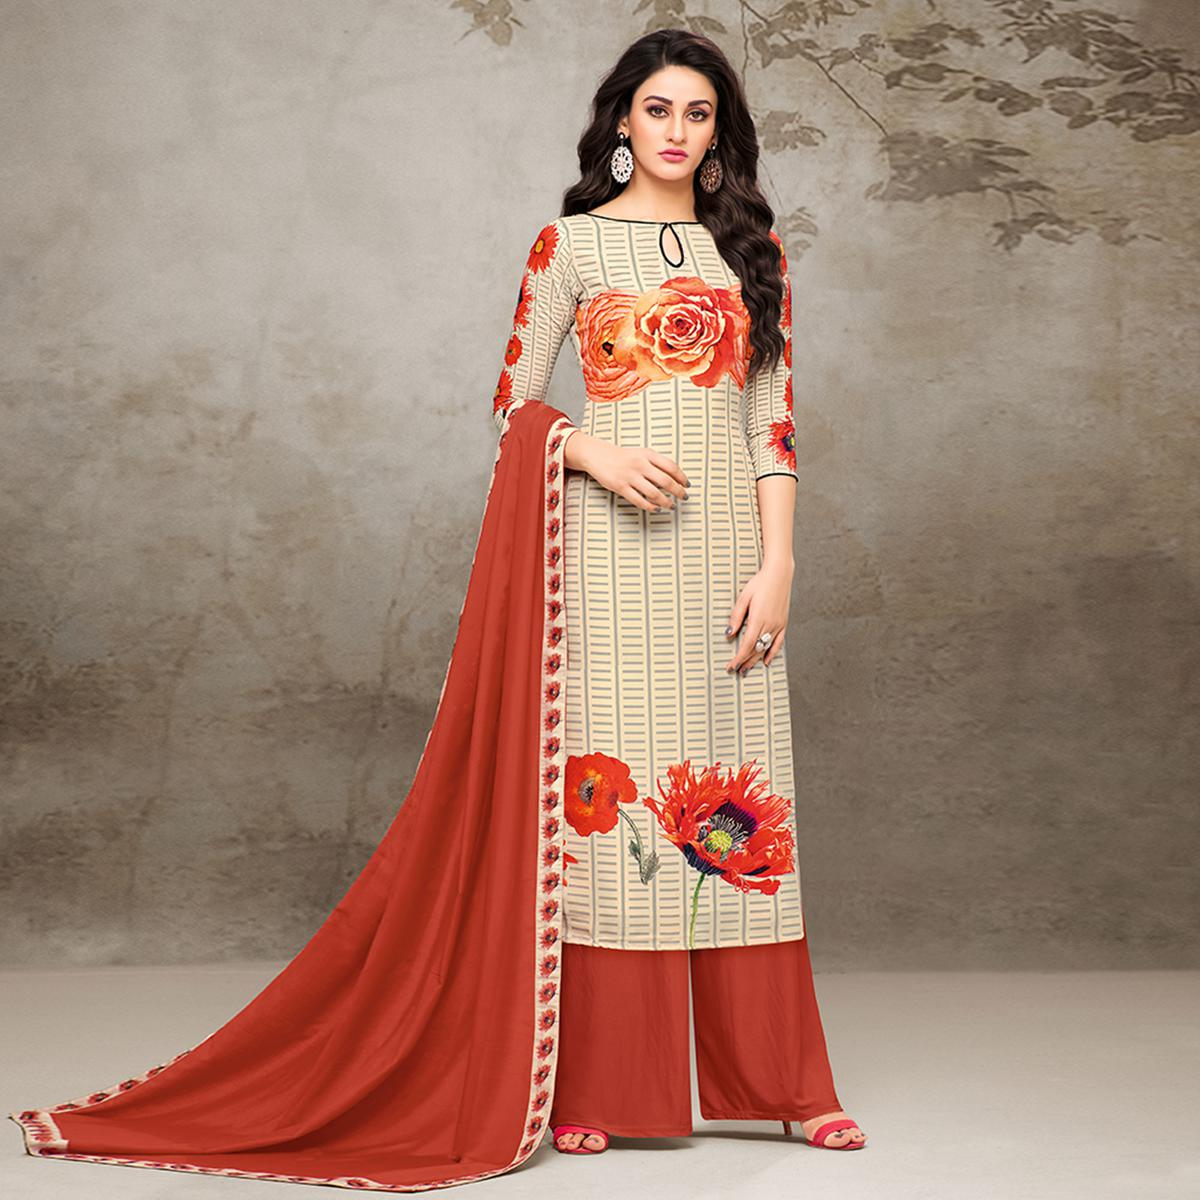 Classy Cream Colored Digital Printed Muslin Cotton Palazzo Suit